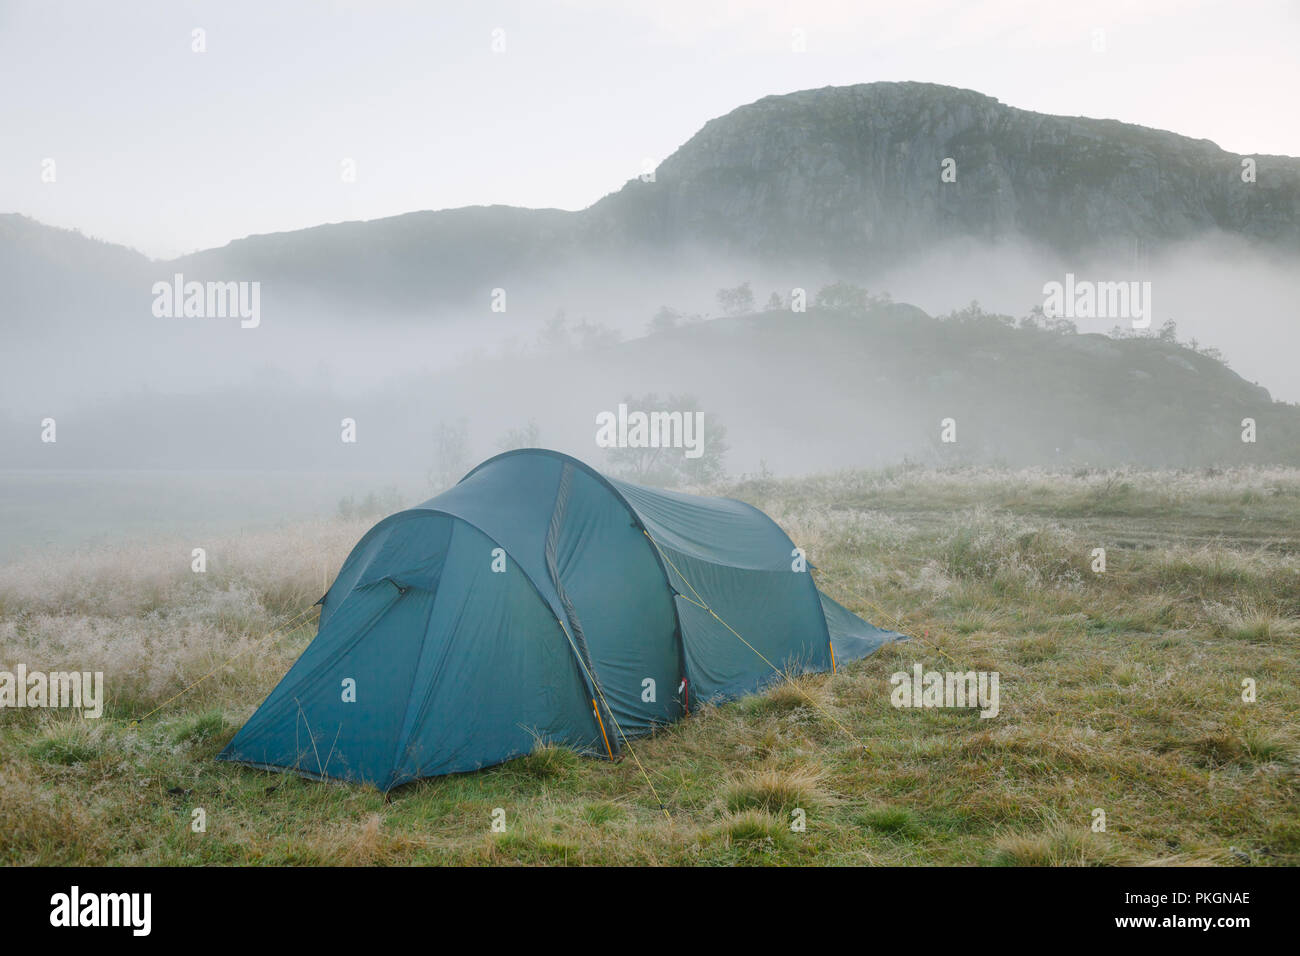 Camping tent at a wild campsite in norwegian mountains in a morning light - Stock Image